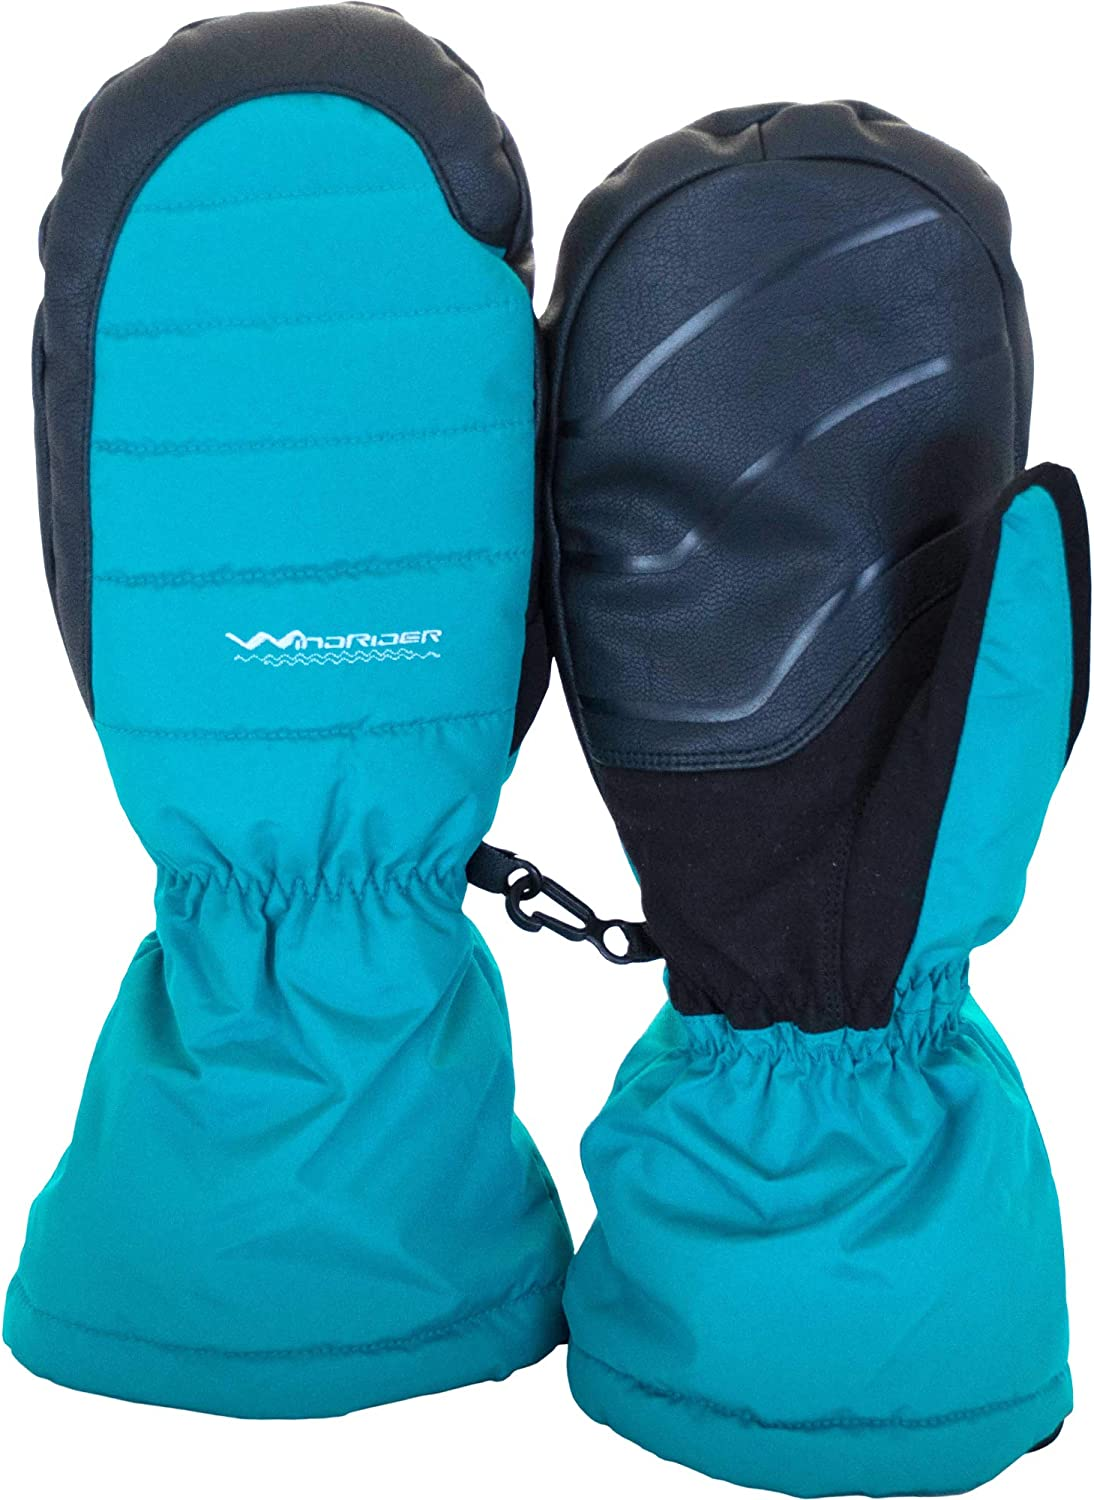 WindRider Puffy Winter Free Shipping New Mittens Super Omaha Mall Warm for Lined a Fleece Men